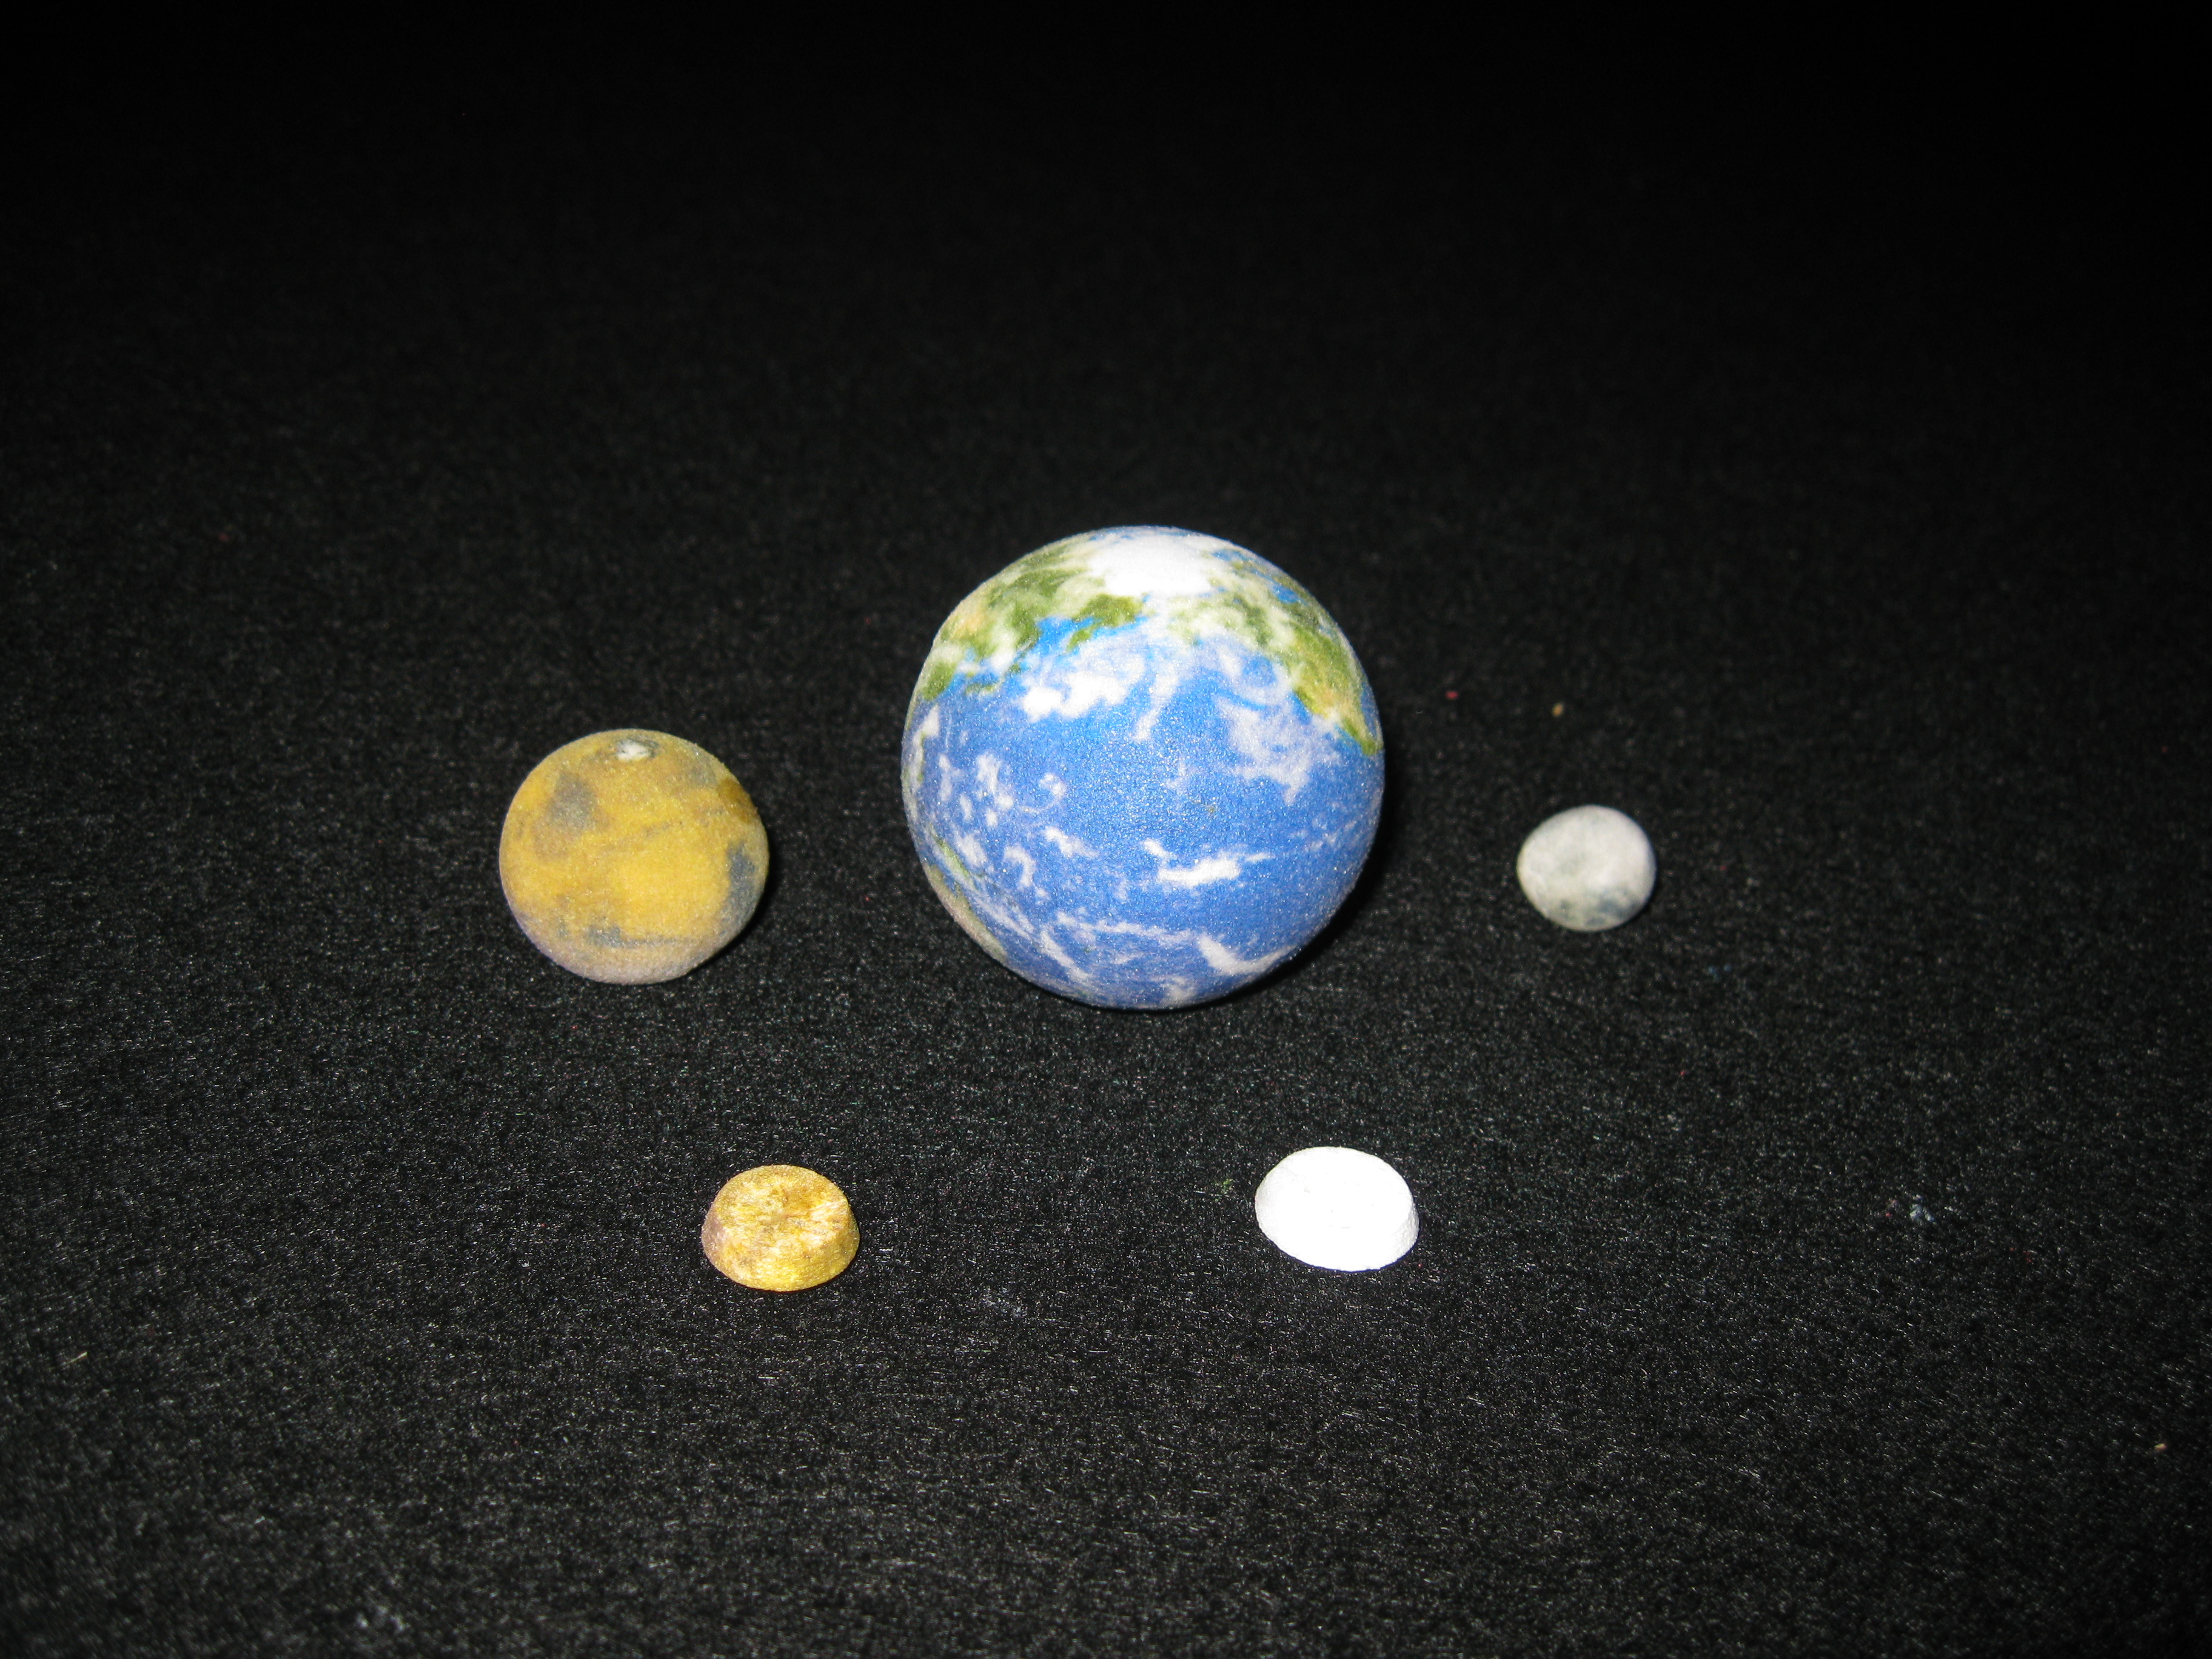 Mars And Its Moons Labeled - Pics about space